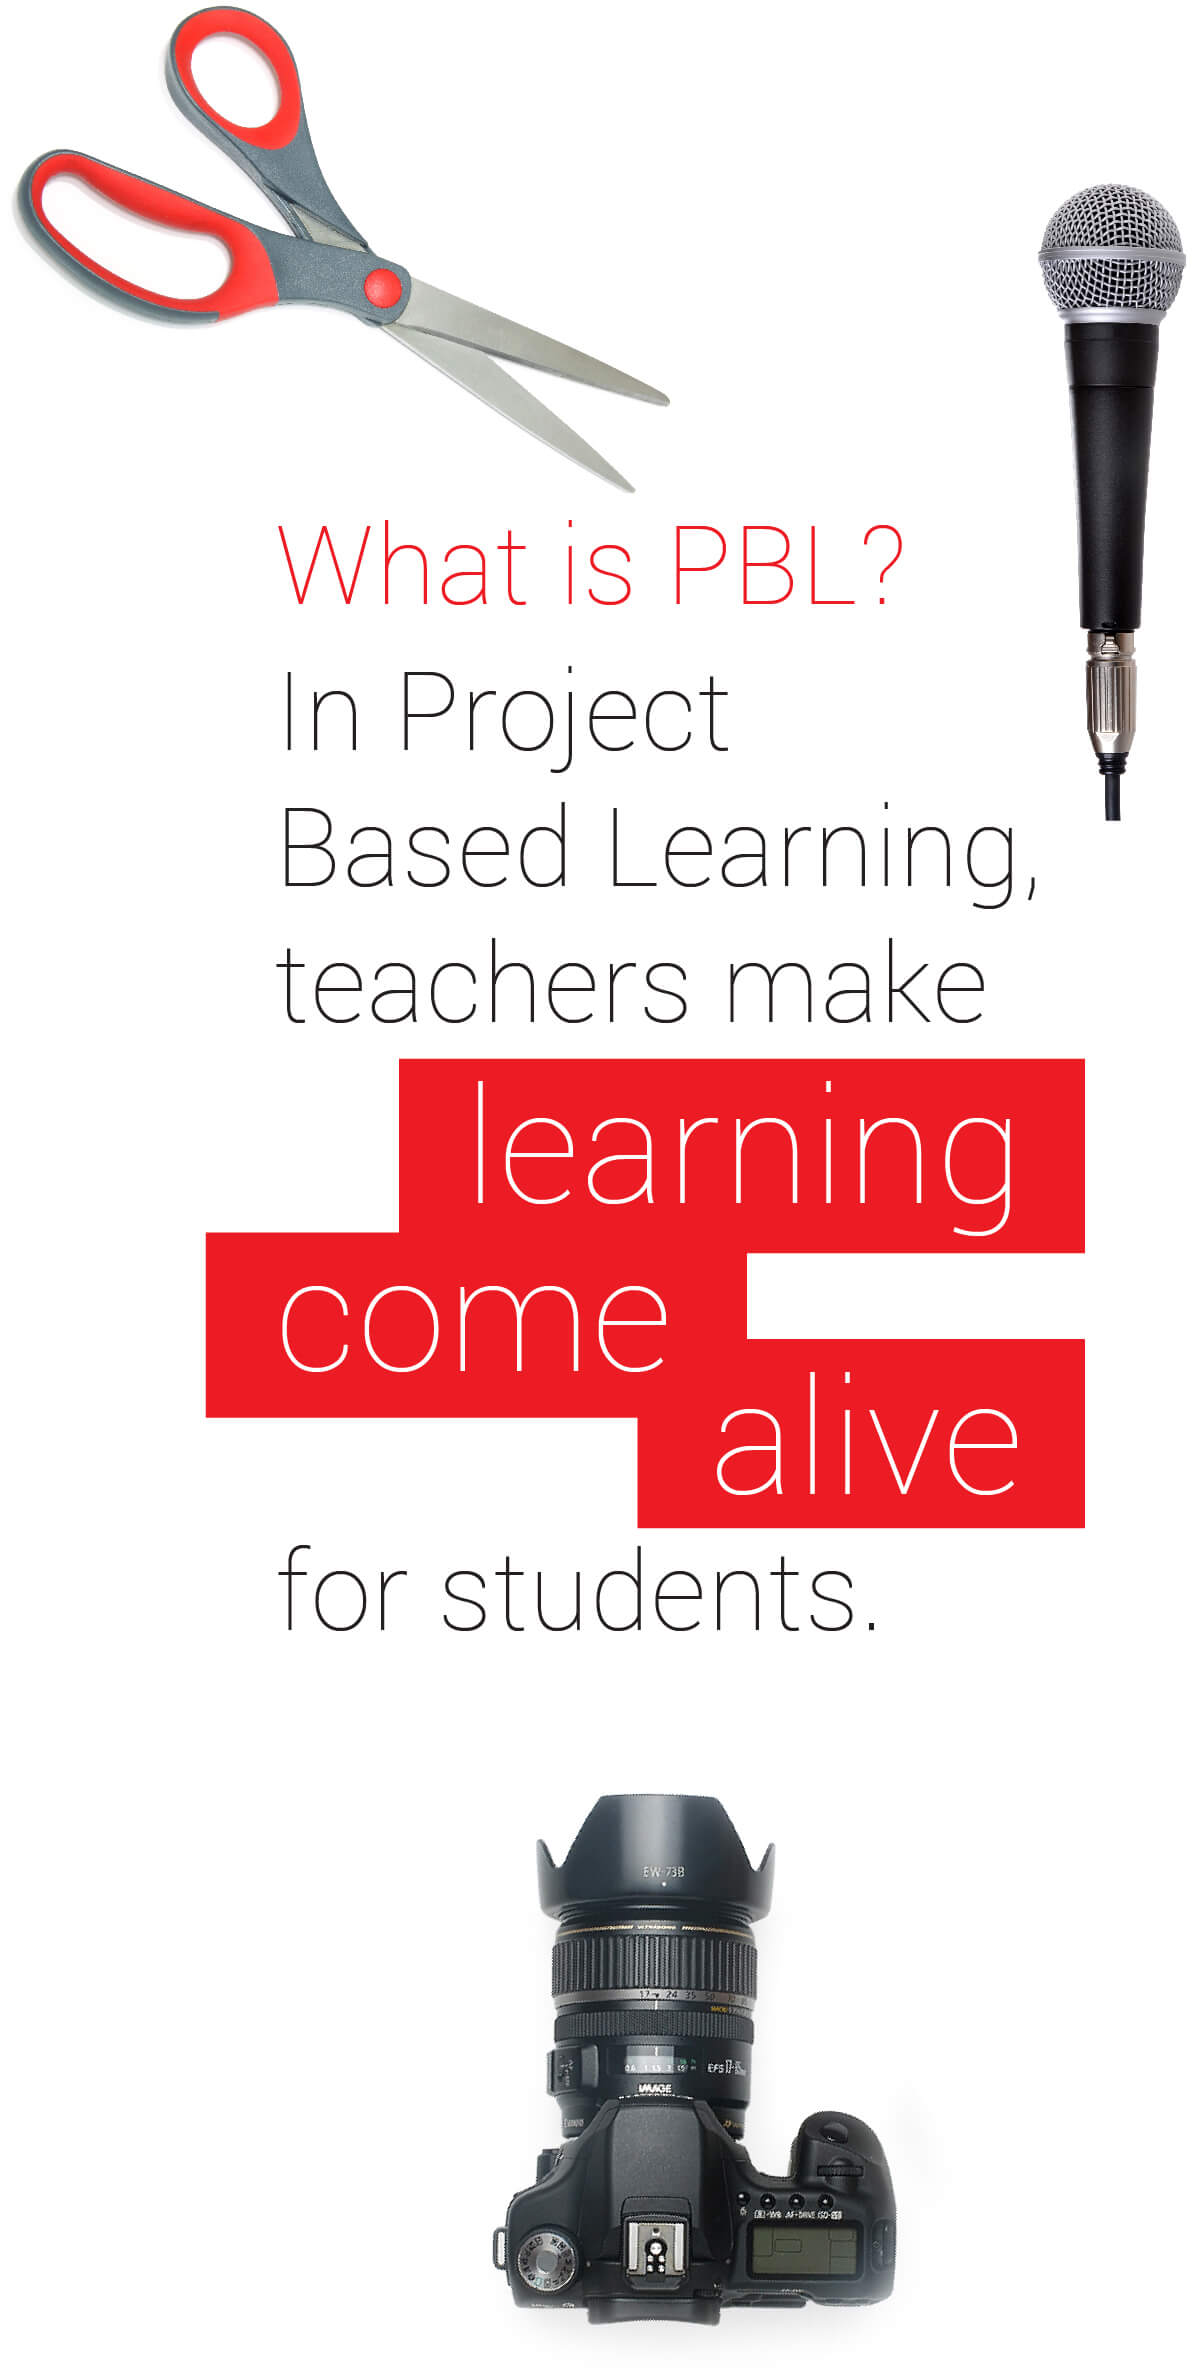 What is PBL? In Project Based Learning, teachers make <em>learning come alive</em> for students with a microphone, scissors, and a digital SLR camera.